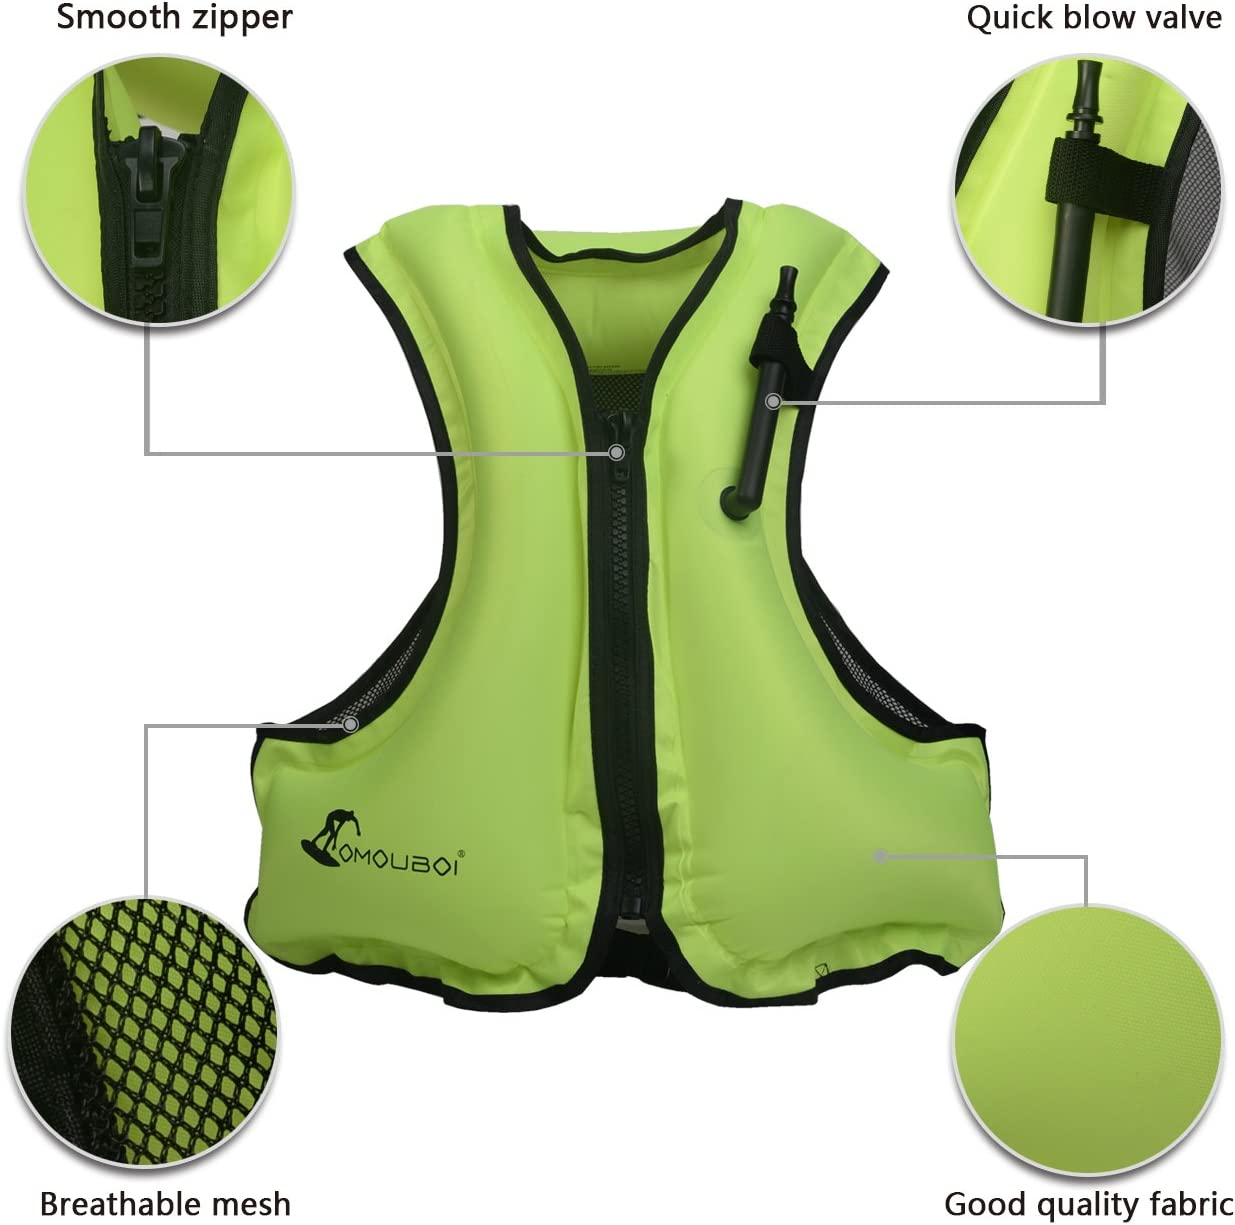 Canyoning Snorkeling Life Jackets OMOUBOI Adult Portable Inflatable Floatable Vest Swim Vest Boating Life Vest Snorkel Vest Fishing Vest Kayaking Diving Swimming,Drifting,Surfing